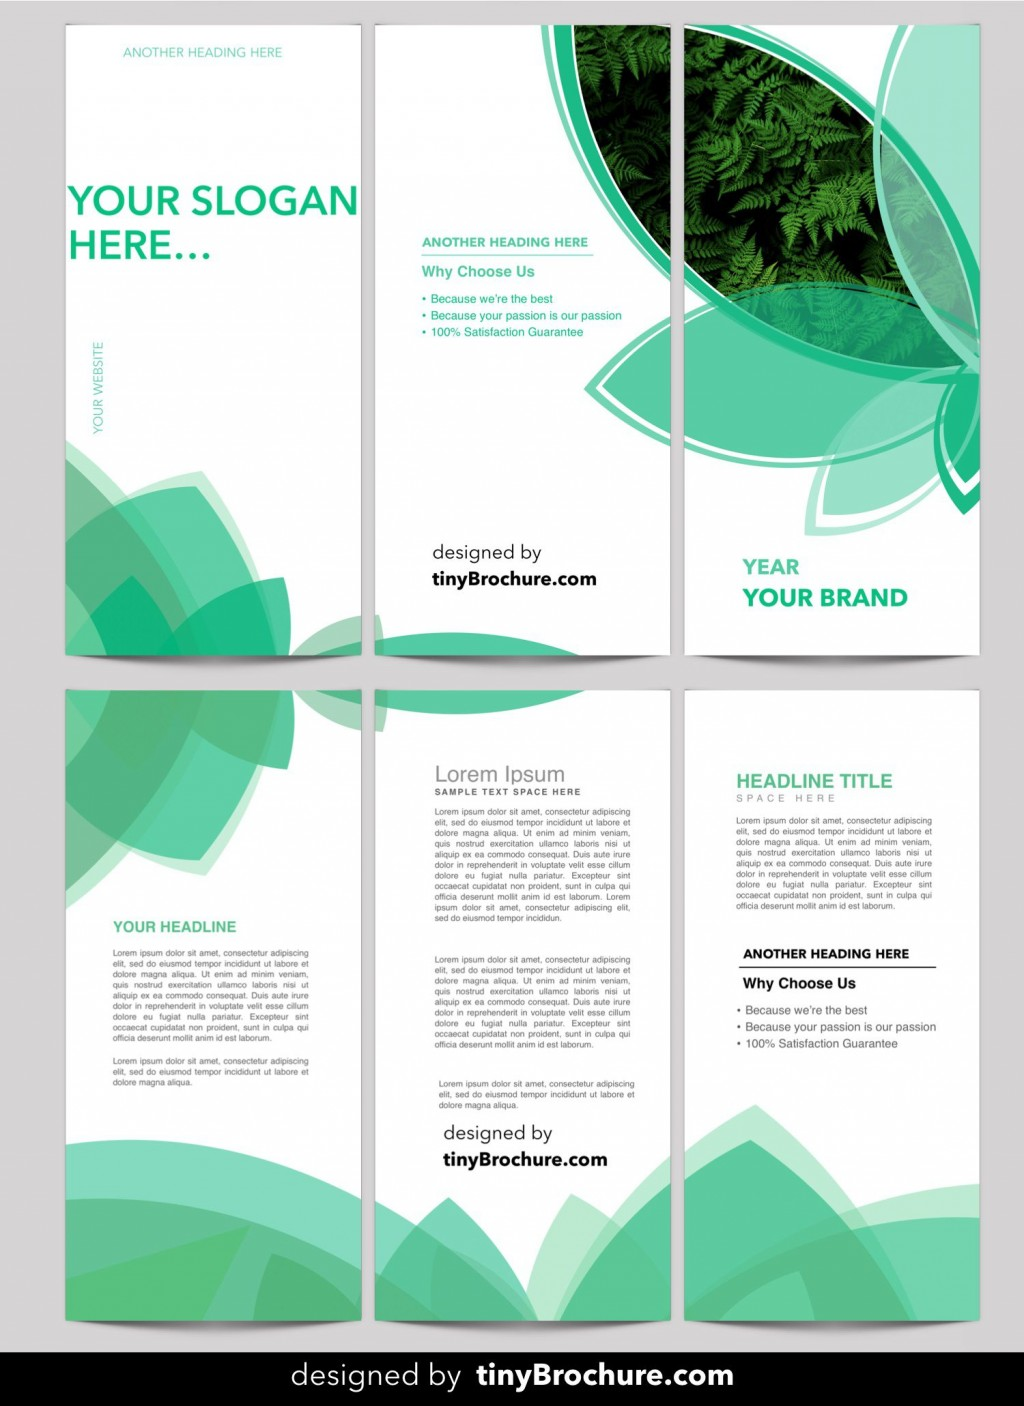 001 Magnificent Microsoft Word Brochure Template Sample  M Free Download Design 2007 A4Large